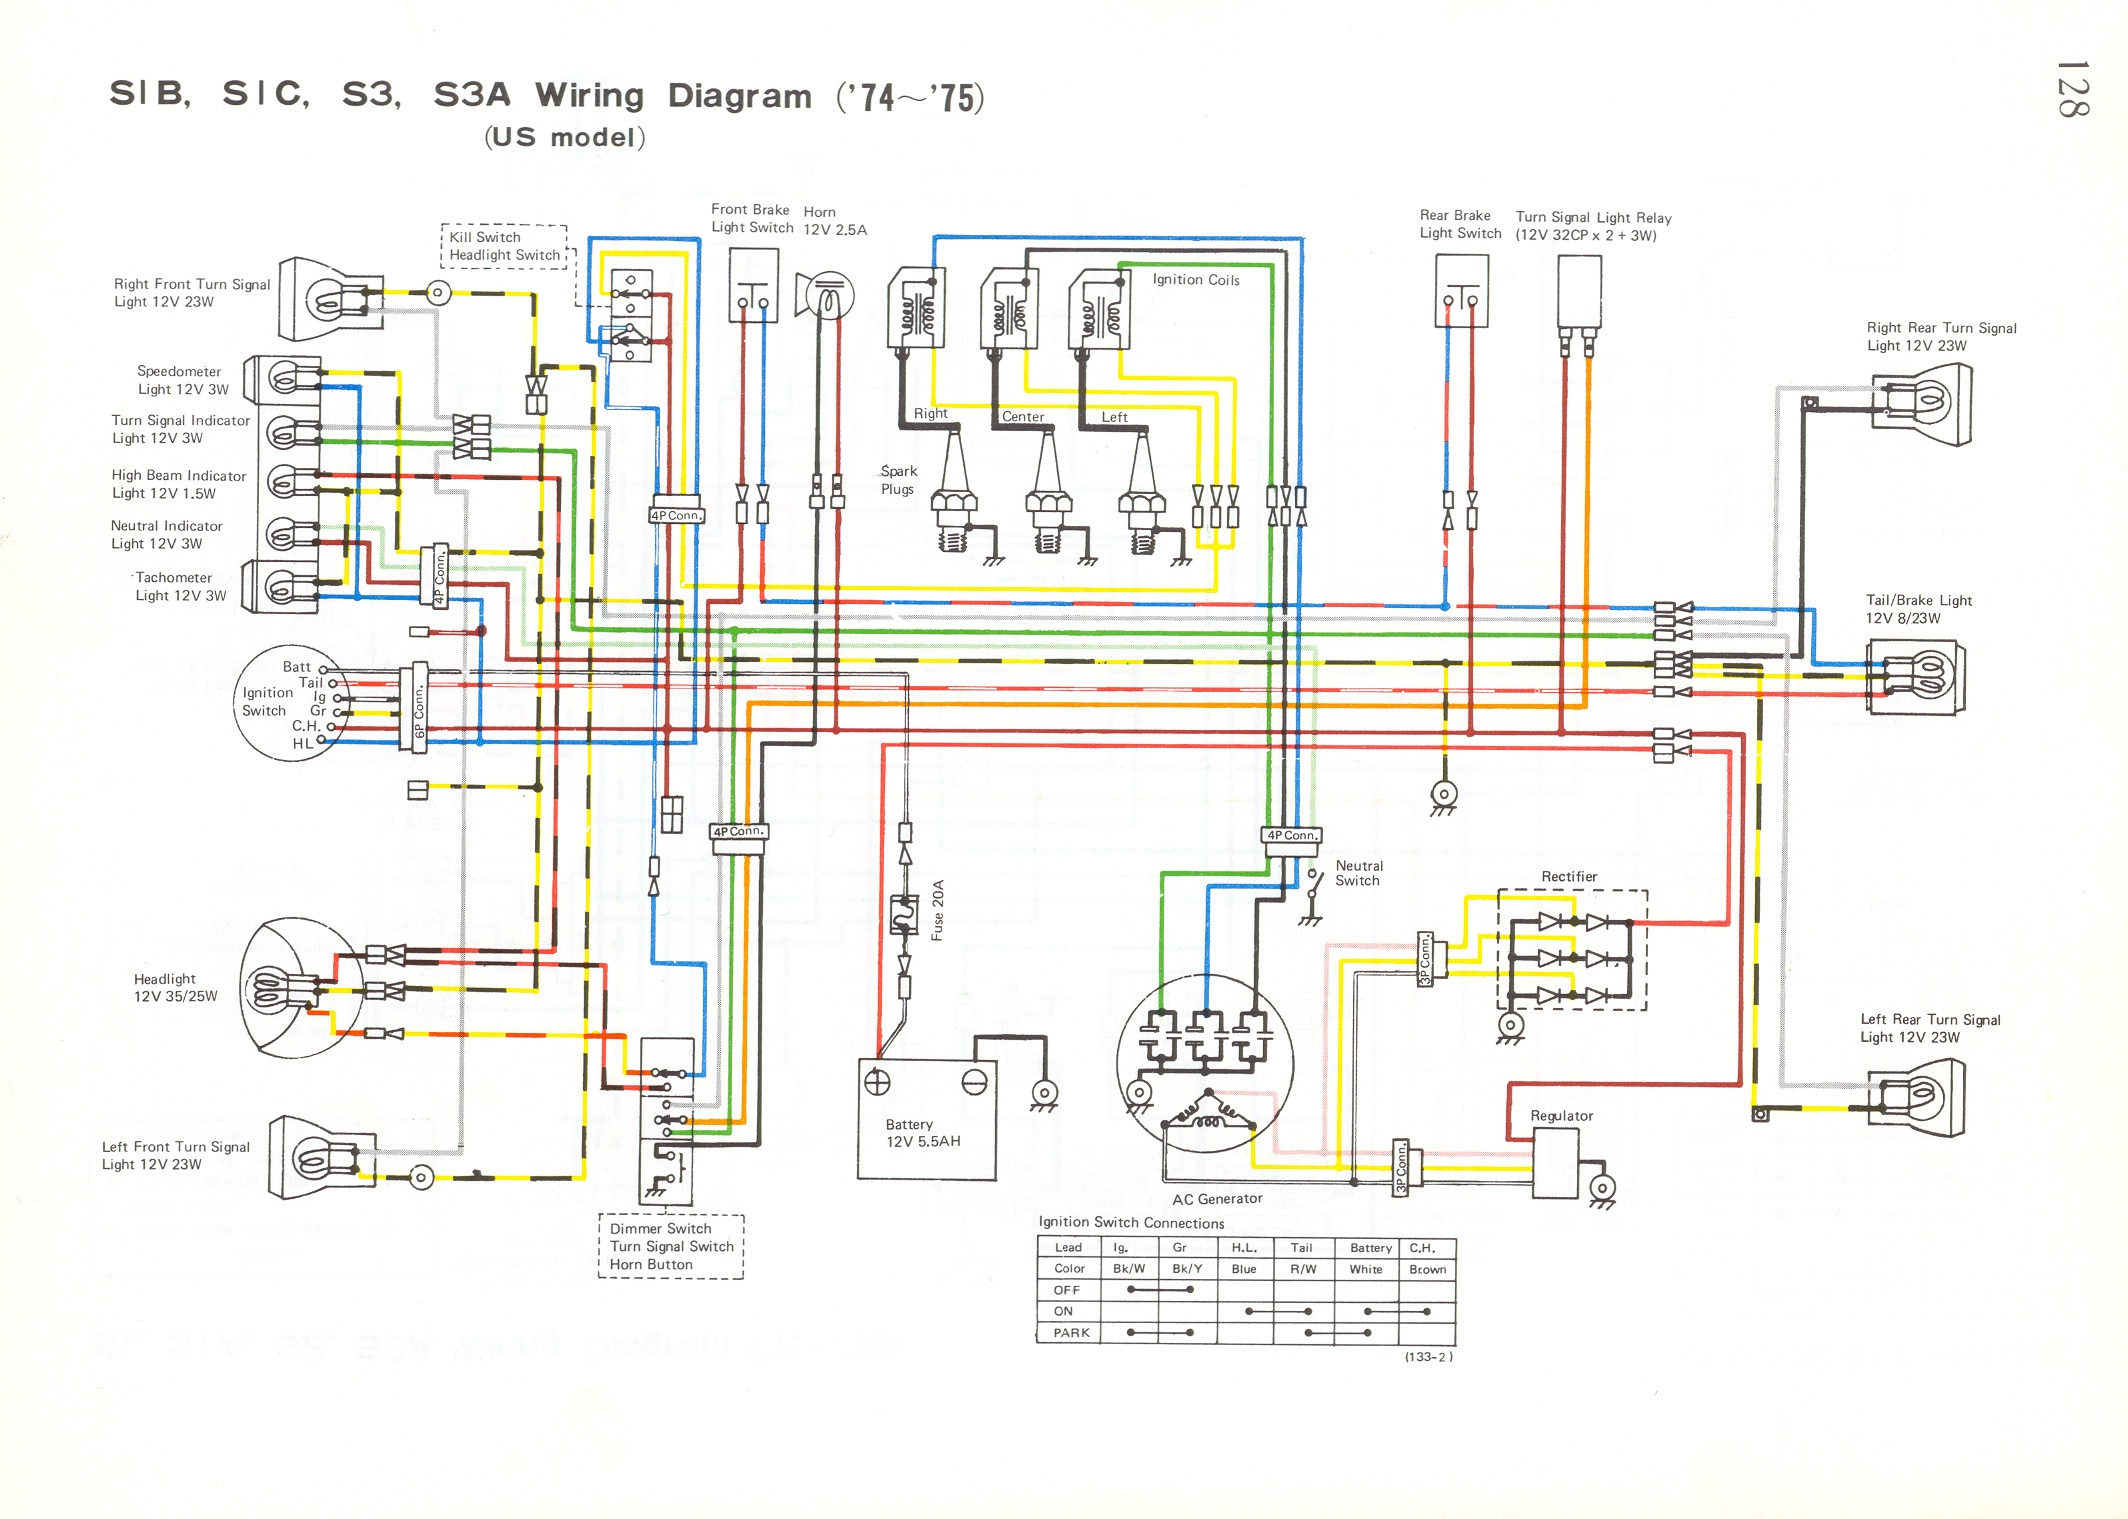 Kawasaki H1 Wiring Diagram Simple Schema For Bayou 300 Diagrams Klf Early W Cdi Edited